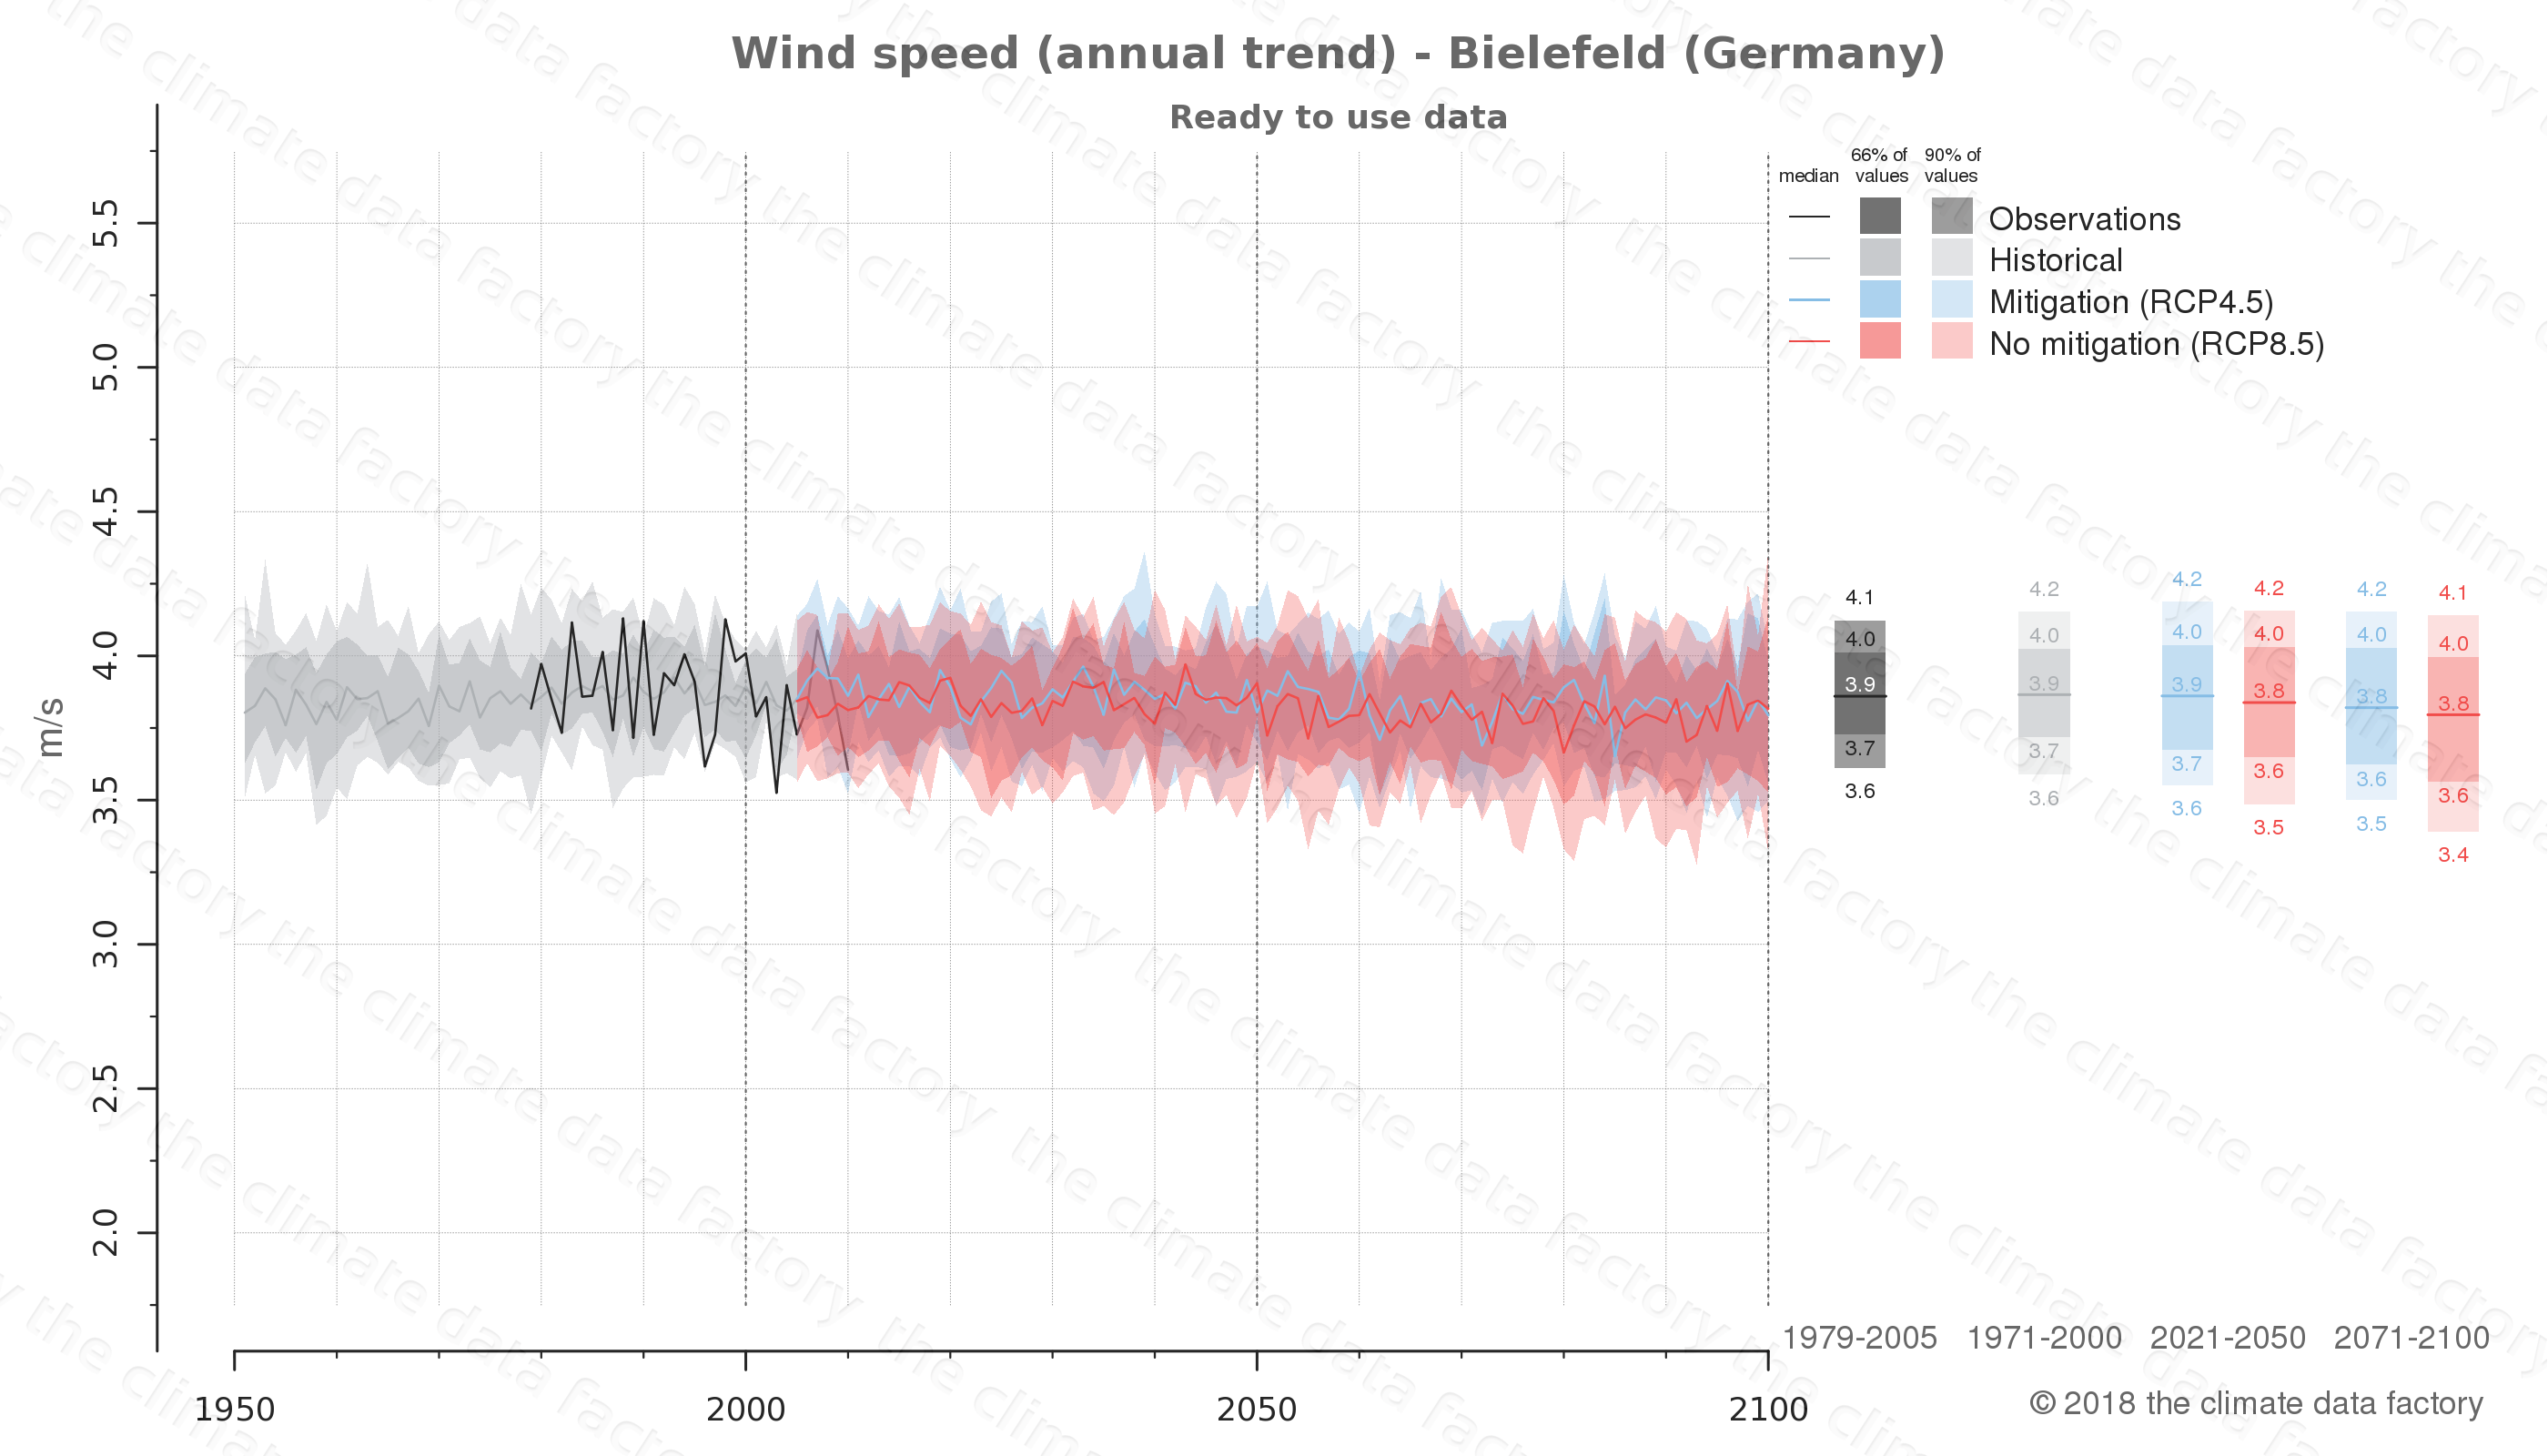 climate change data policy adaptation climate graph city data wind-speed bielefeld germany